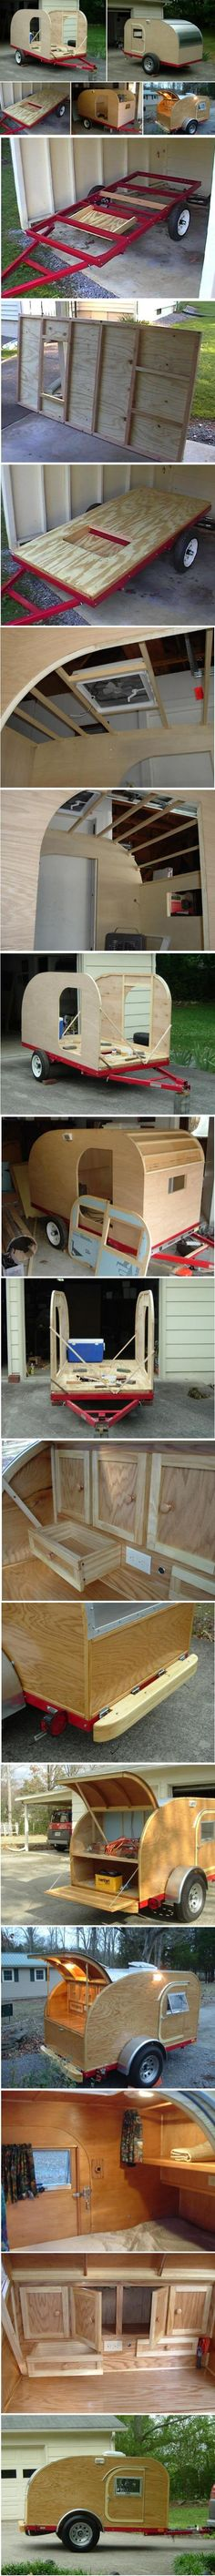 Construction d'une mini caravane ou teardrop trailer.